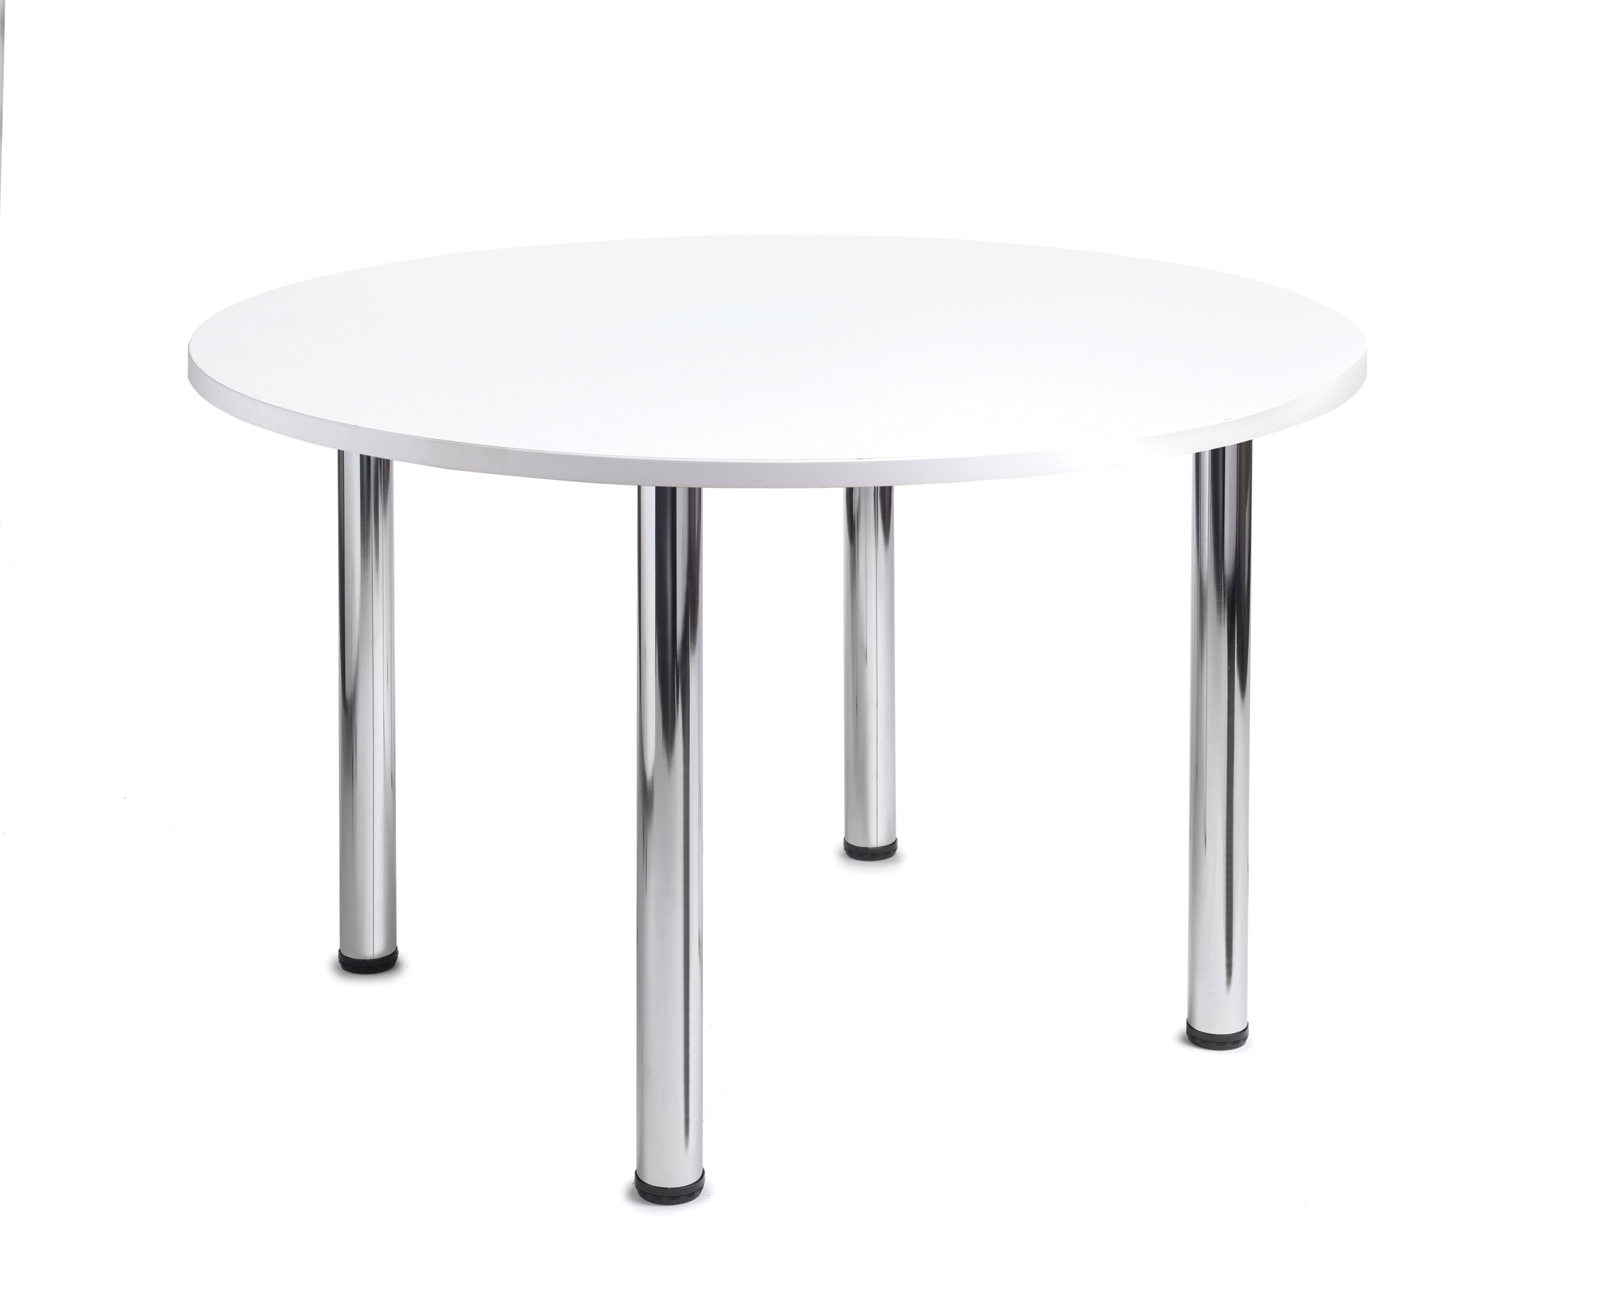 1000mm diameter Top + Chrome radial Legs - White